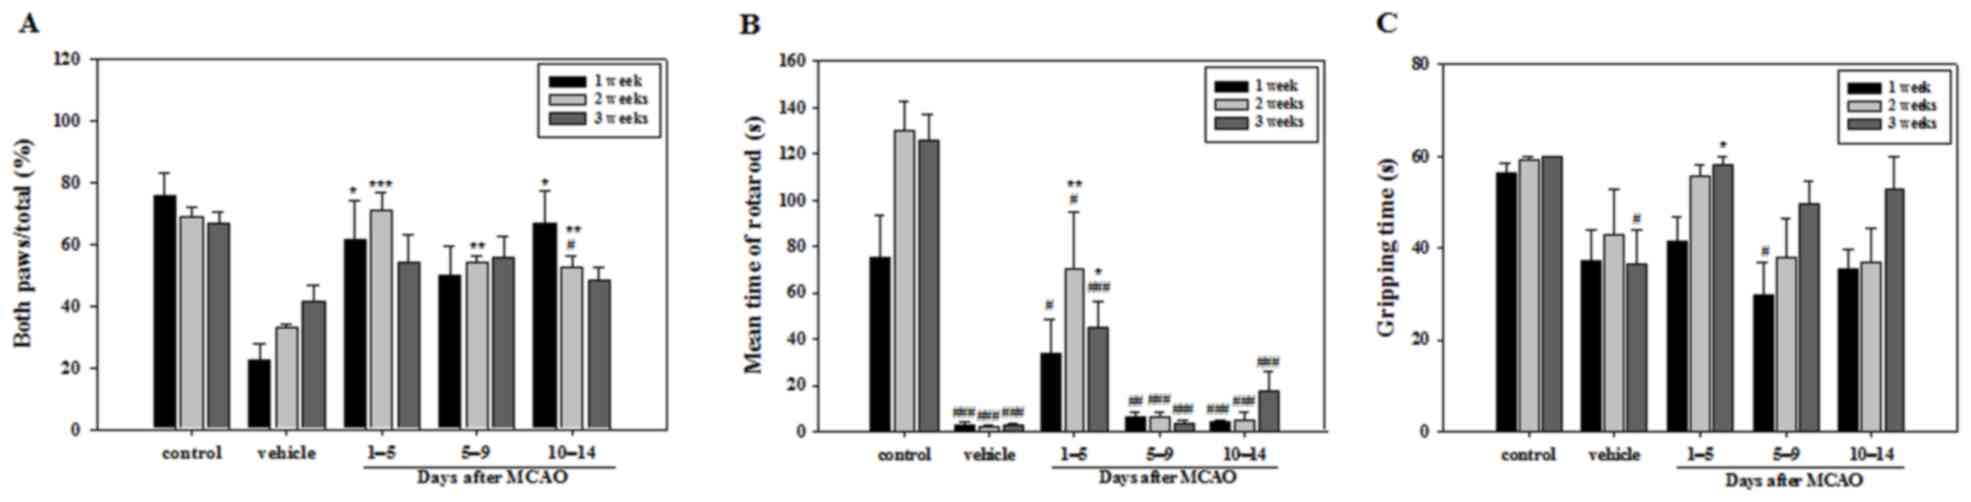 Aripiprazole Exerts A Neuroprotective Effect In Mouse Focal Cerebral Newman Motor Wiring Diagram Behavioral Test Evaluating The Dysfunction Induced By Ischemic Stroke Cylinder B Rotarod And C Wire Suspension